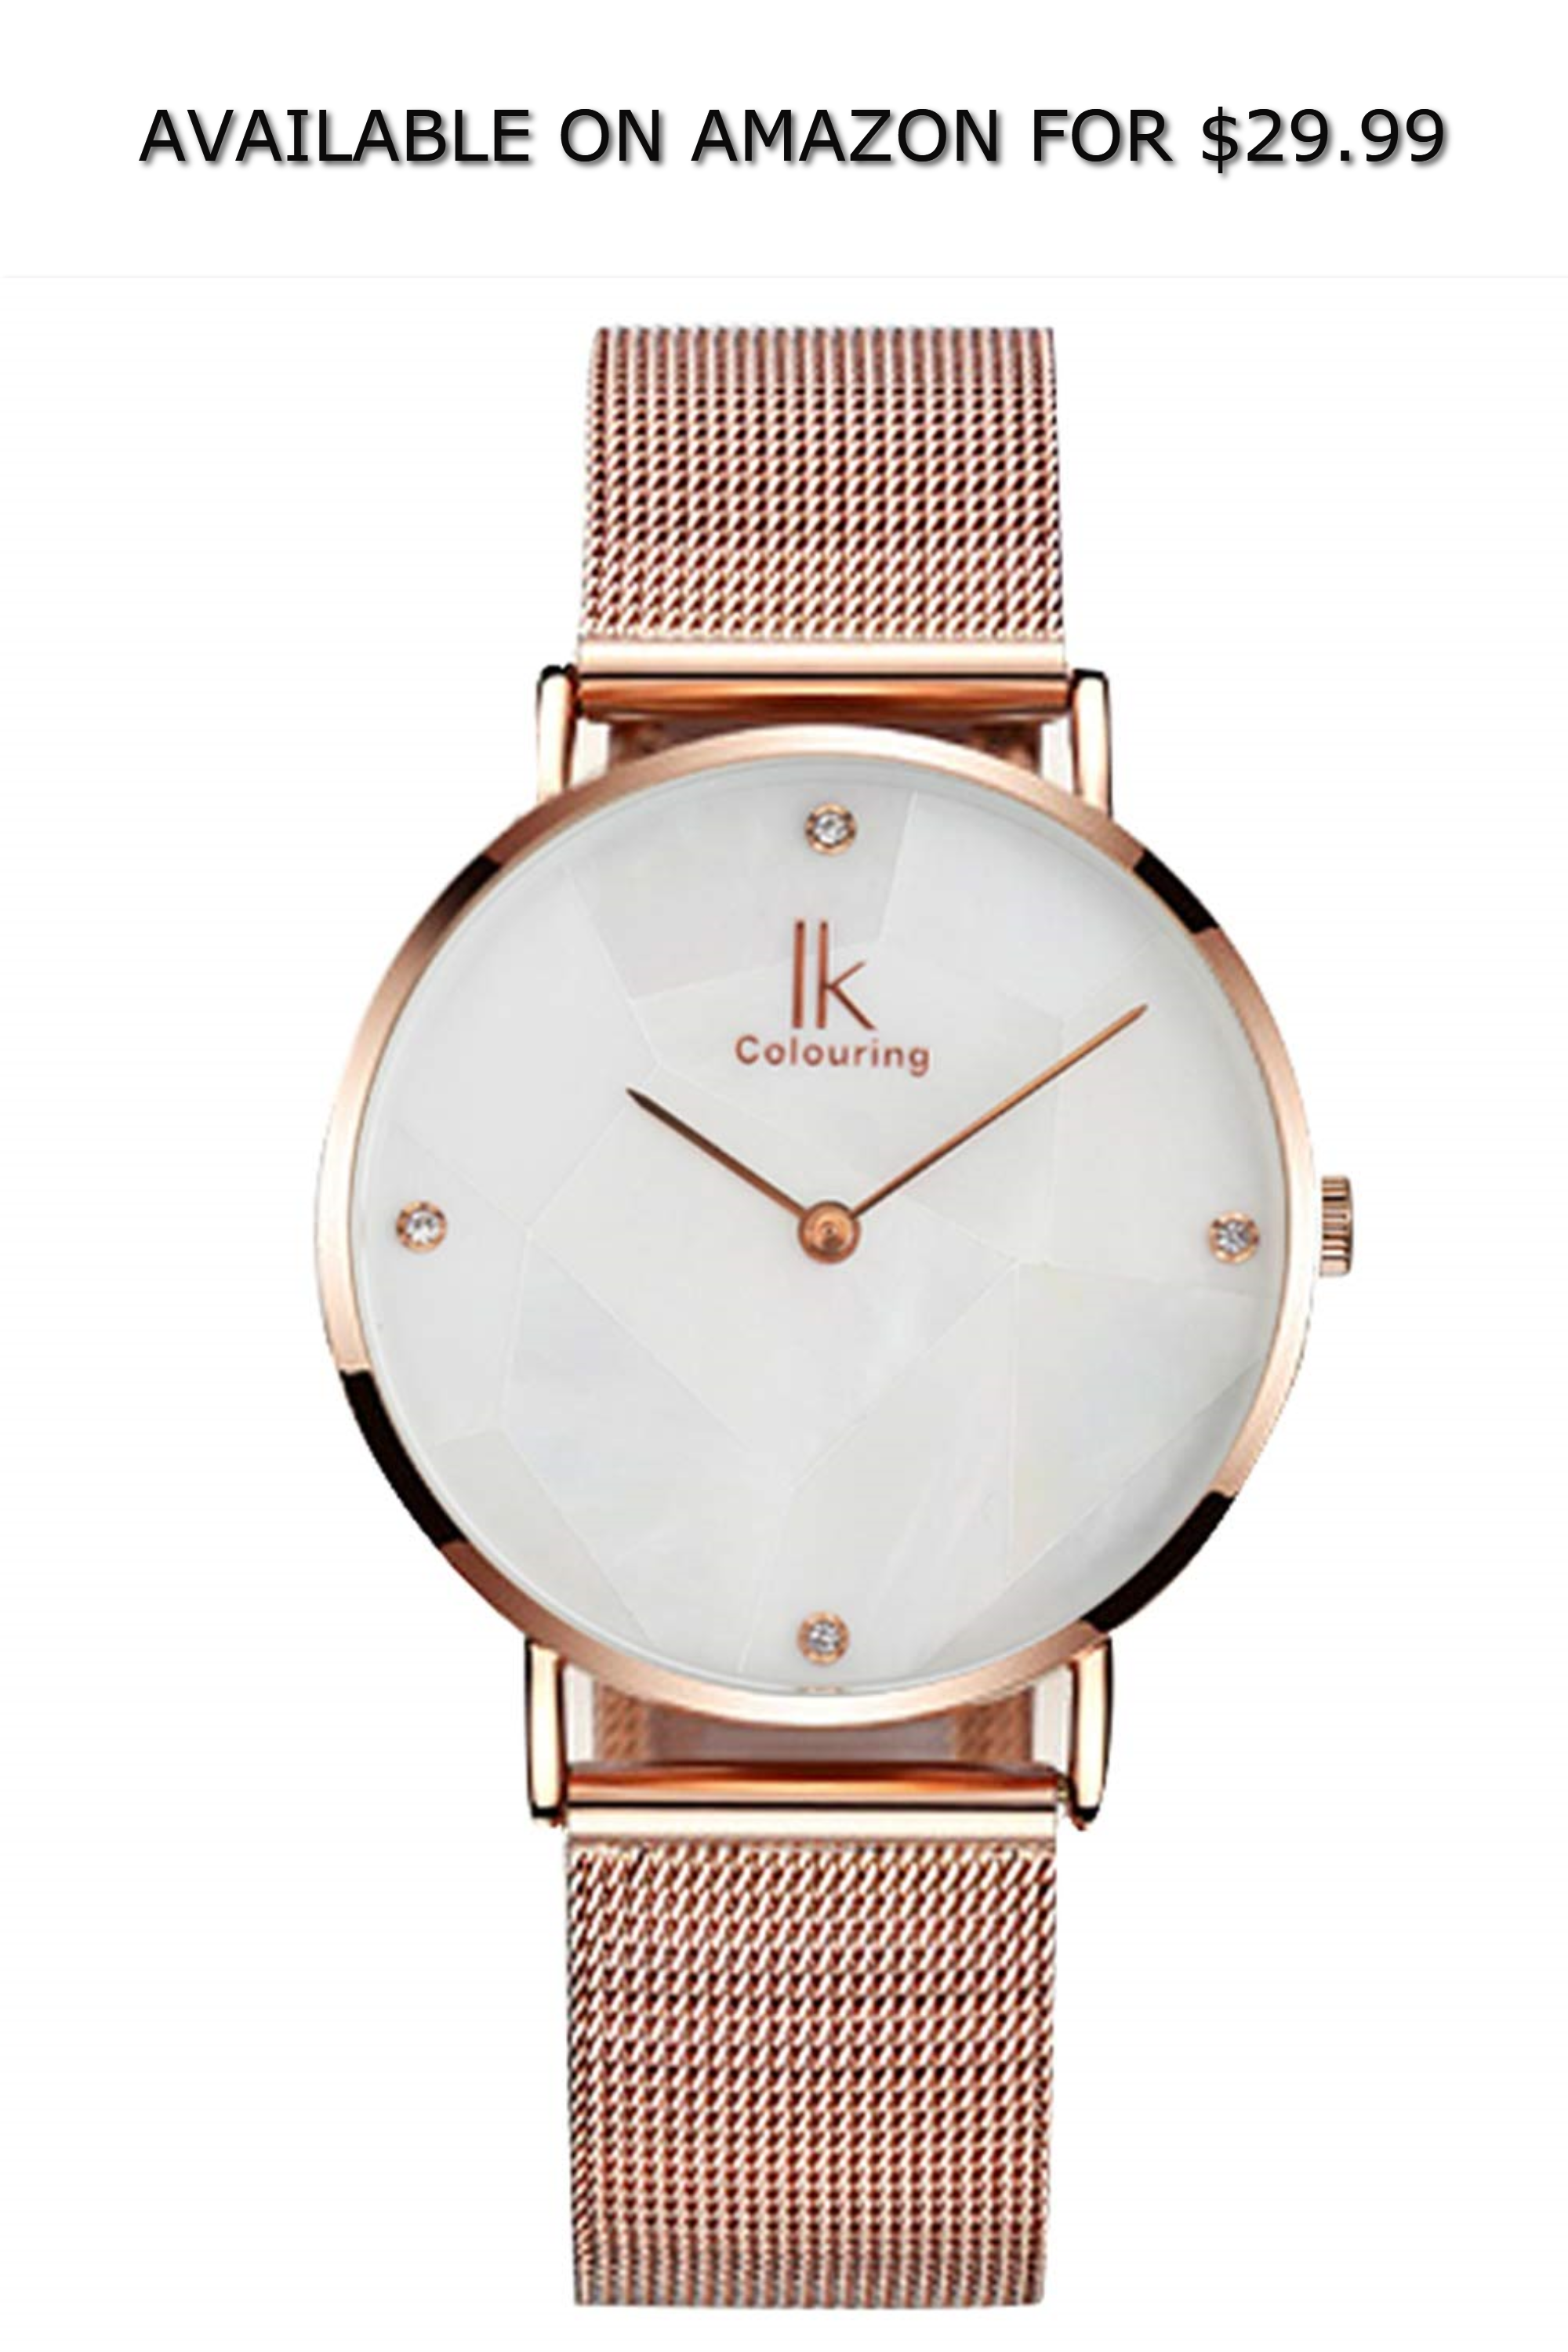 ad69334db Ultra-Thin Womens Watches, Quartz Analog Wrist Watch Marble Face Rose Gold  Strap ◇